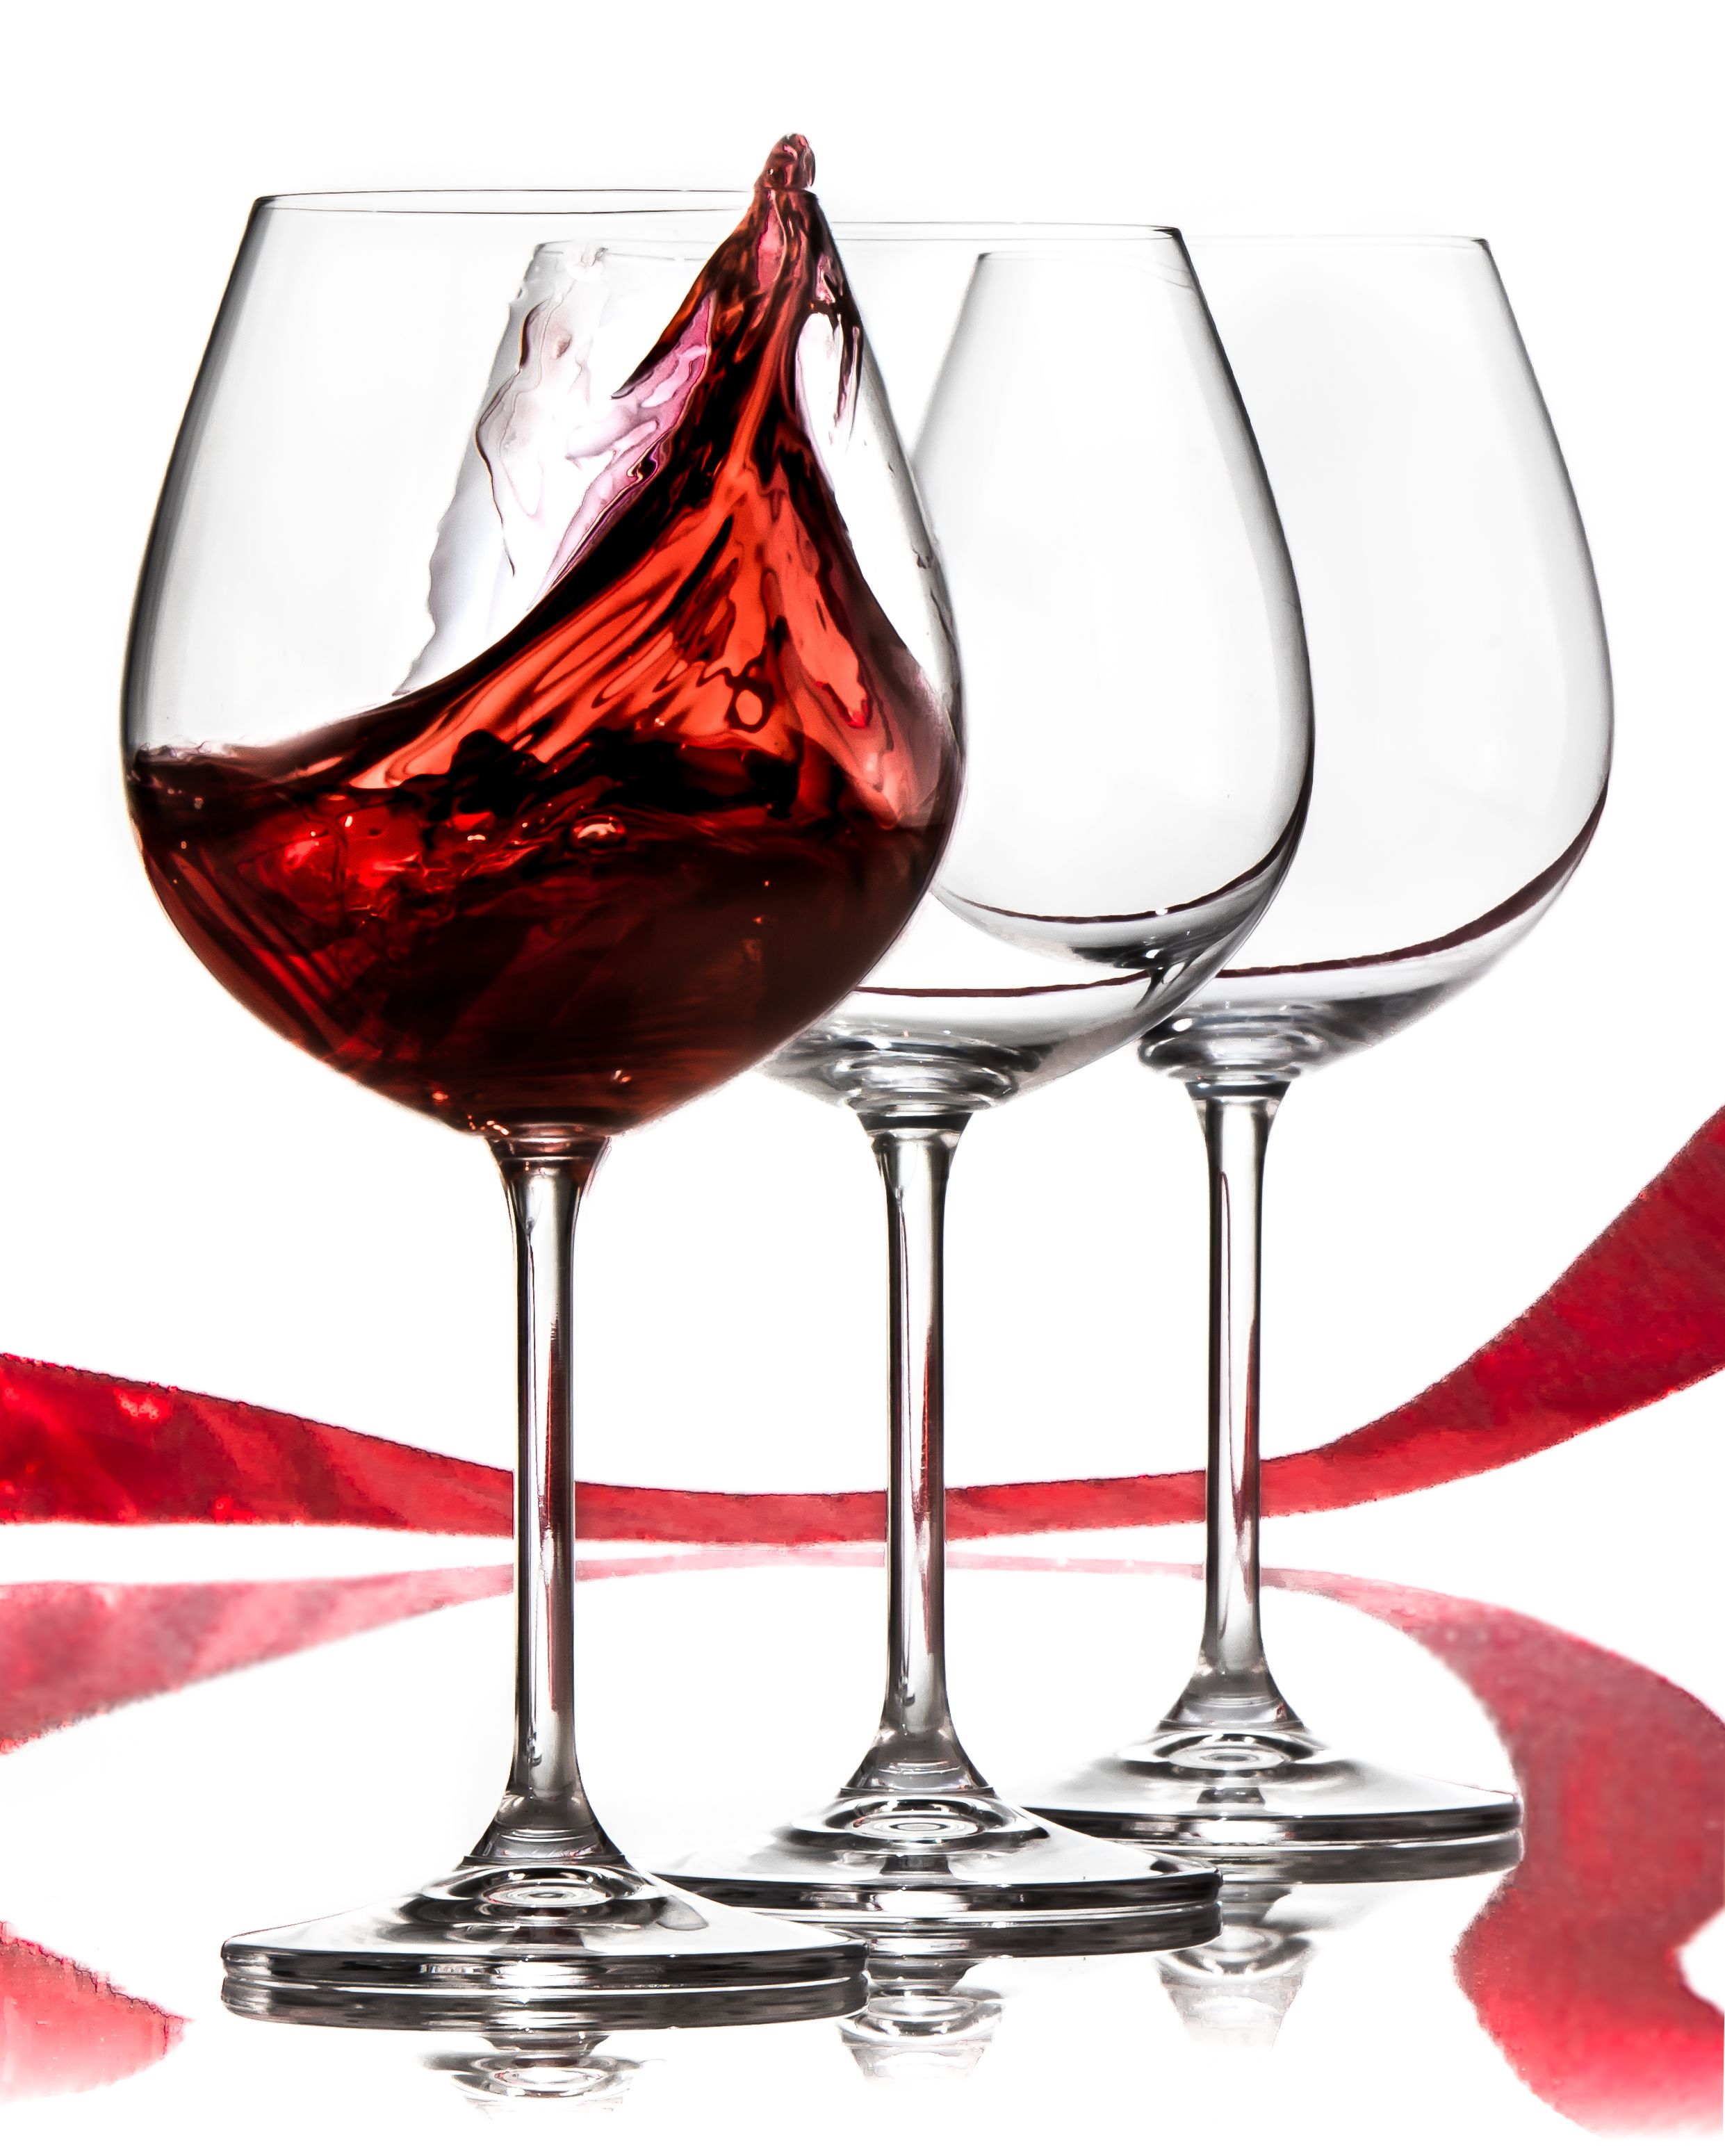 Our Best Seller Red Wine Glass Is A Favorite Of Many Hurry Grab Yours Now Perfect As A Christmas Gift Click This Photo T Red Wine Glasses Red Wine Wine